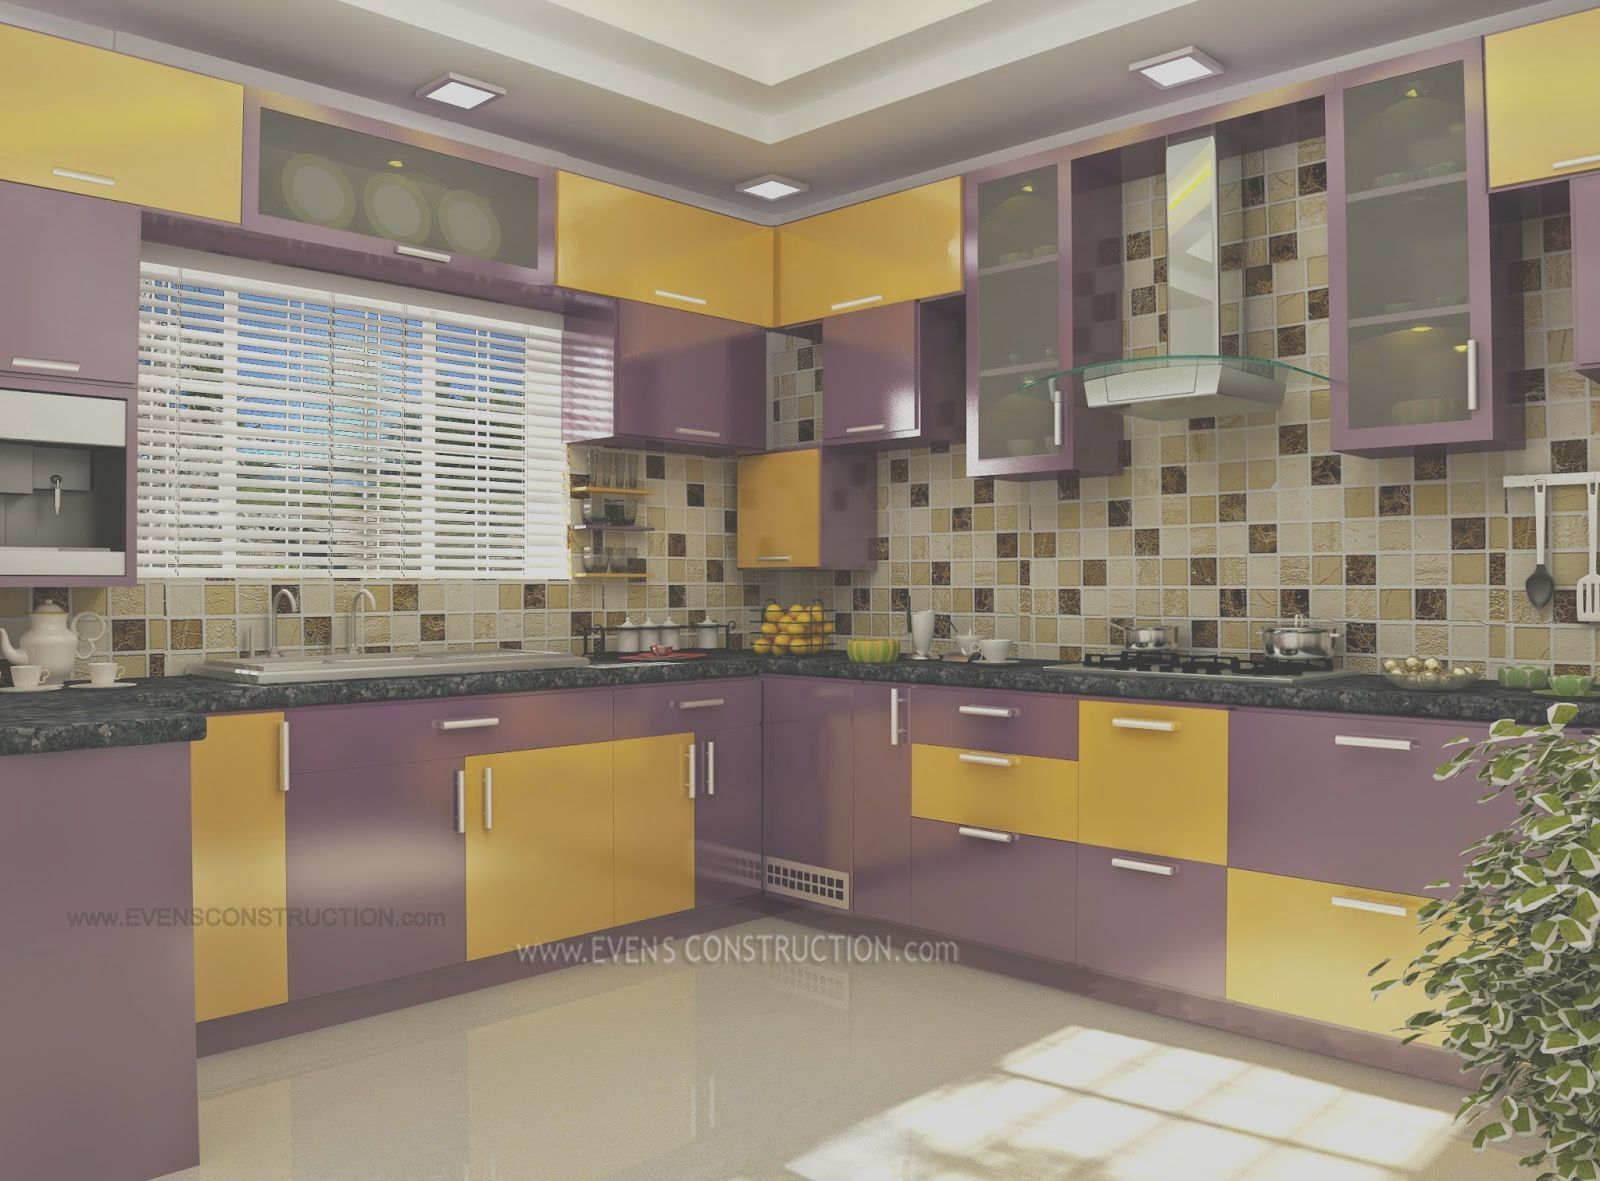 Modern Kitchen Kerala Style 29 Best Kerala Homes Interior Designs Images On Pinterest Evens Con In 2020 Kitchen Window Design Kitchen Furniture Design Kitchen Design